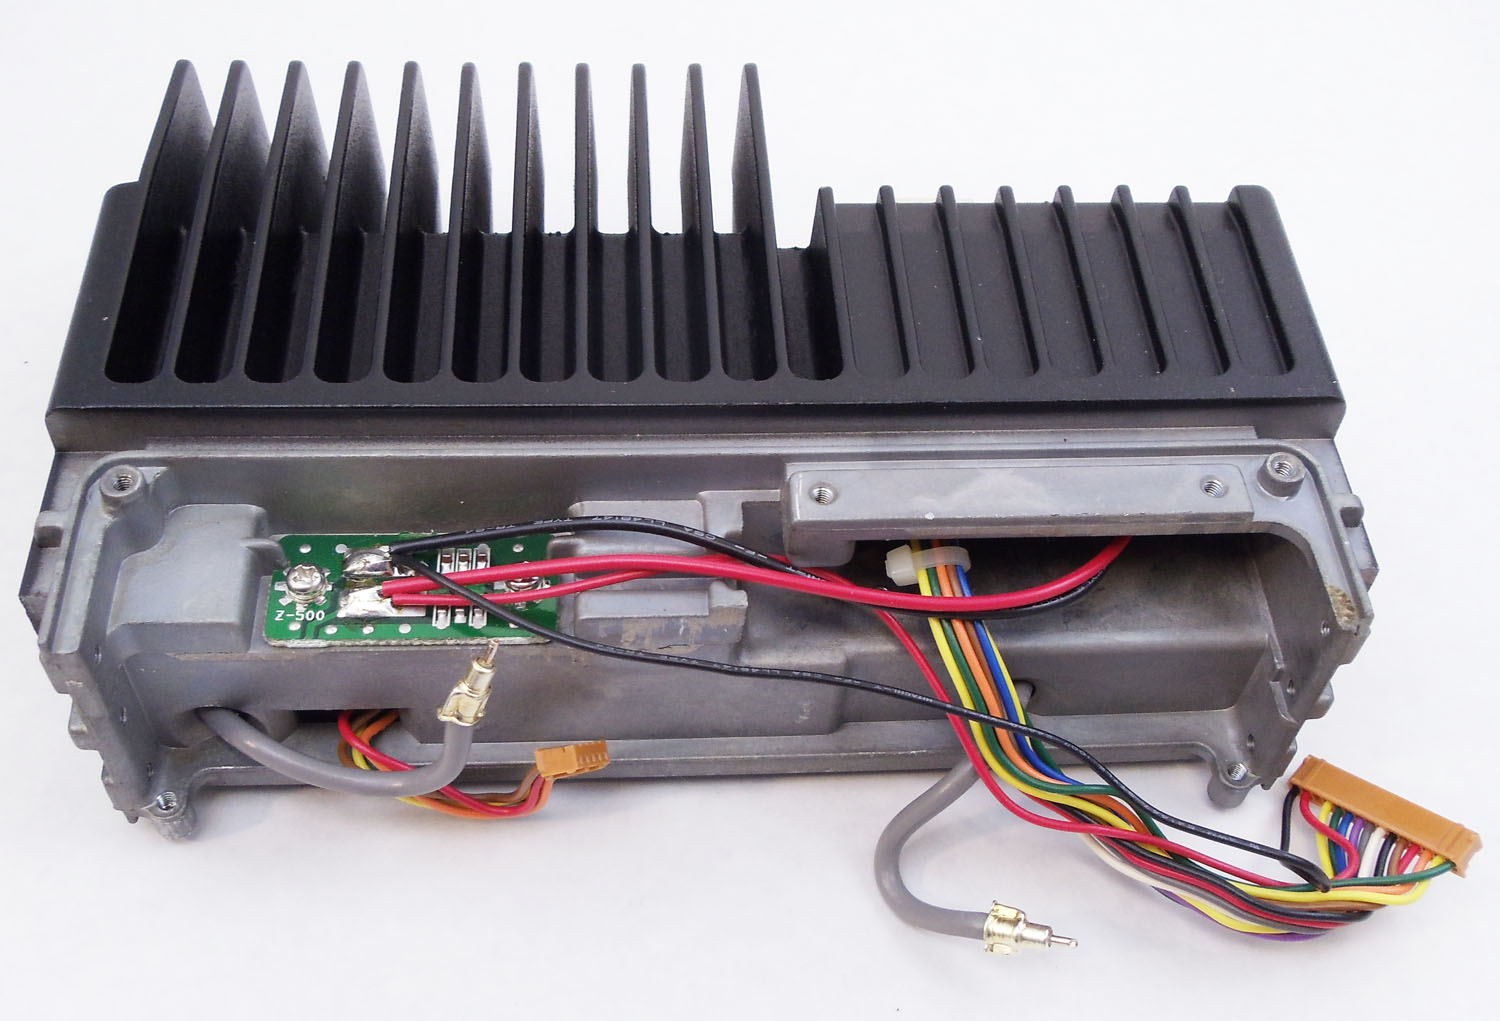 MIDLAND - 70-5300B 30 WATT REPLACEMENT AMPLIFIER FOR 450-470 MHZ BUSINESS  RADIOS 70PA53